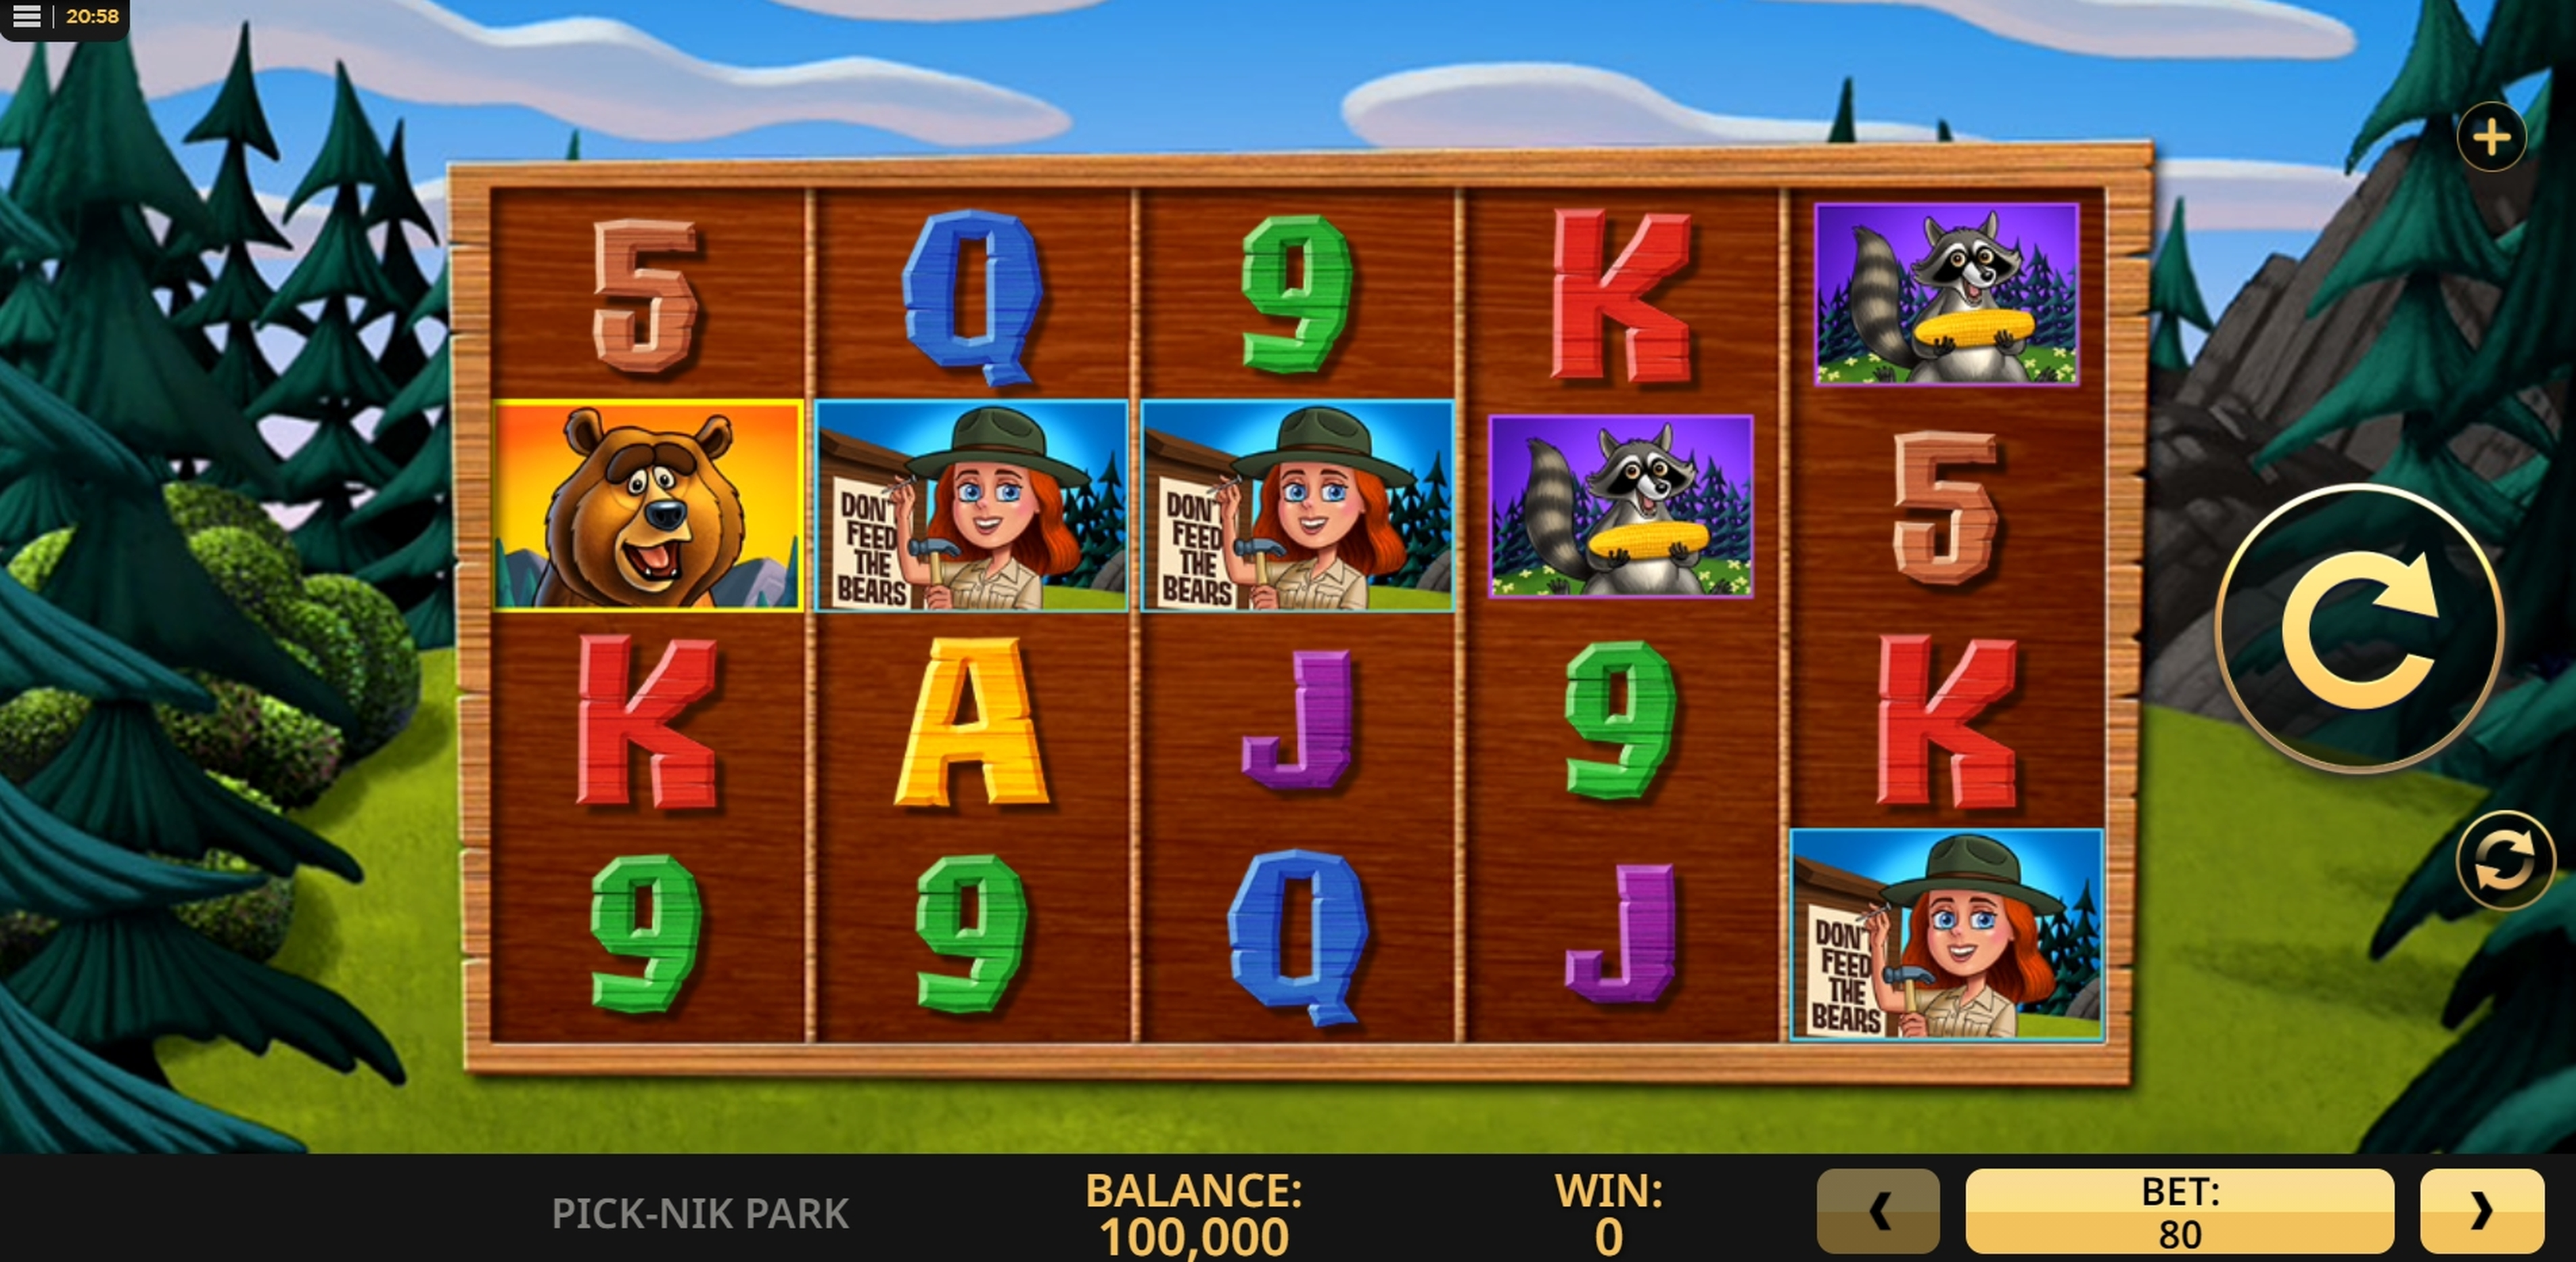 Reels in Pick-Nik Park Slot Game by High 5 Games